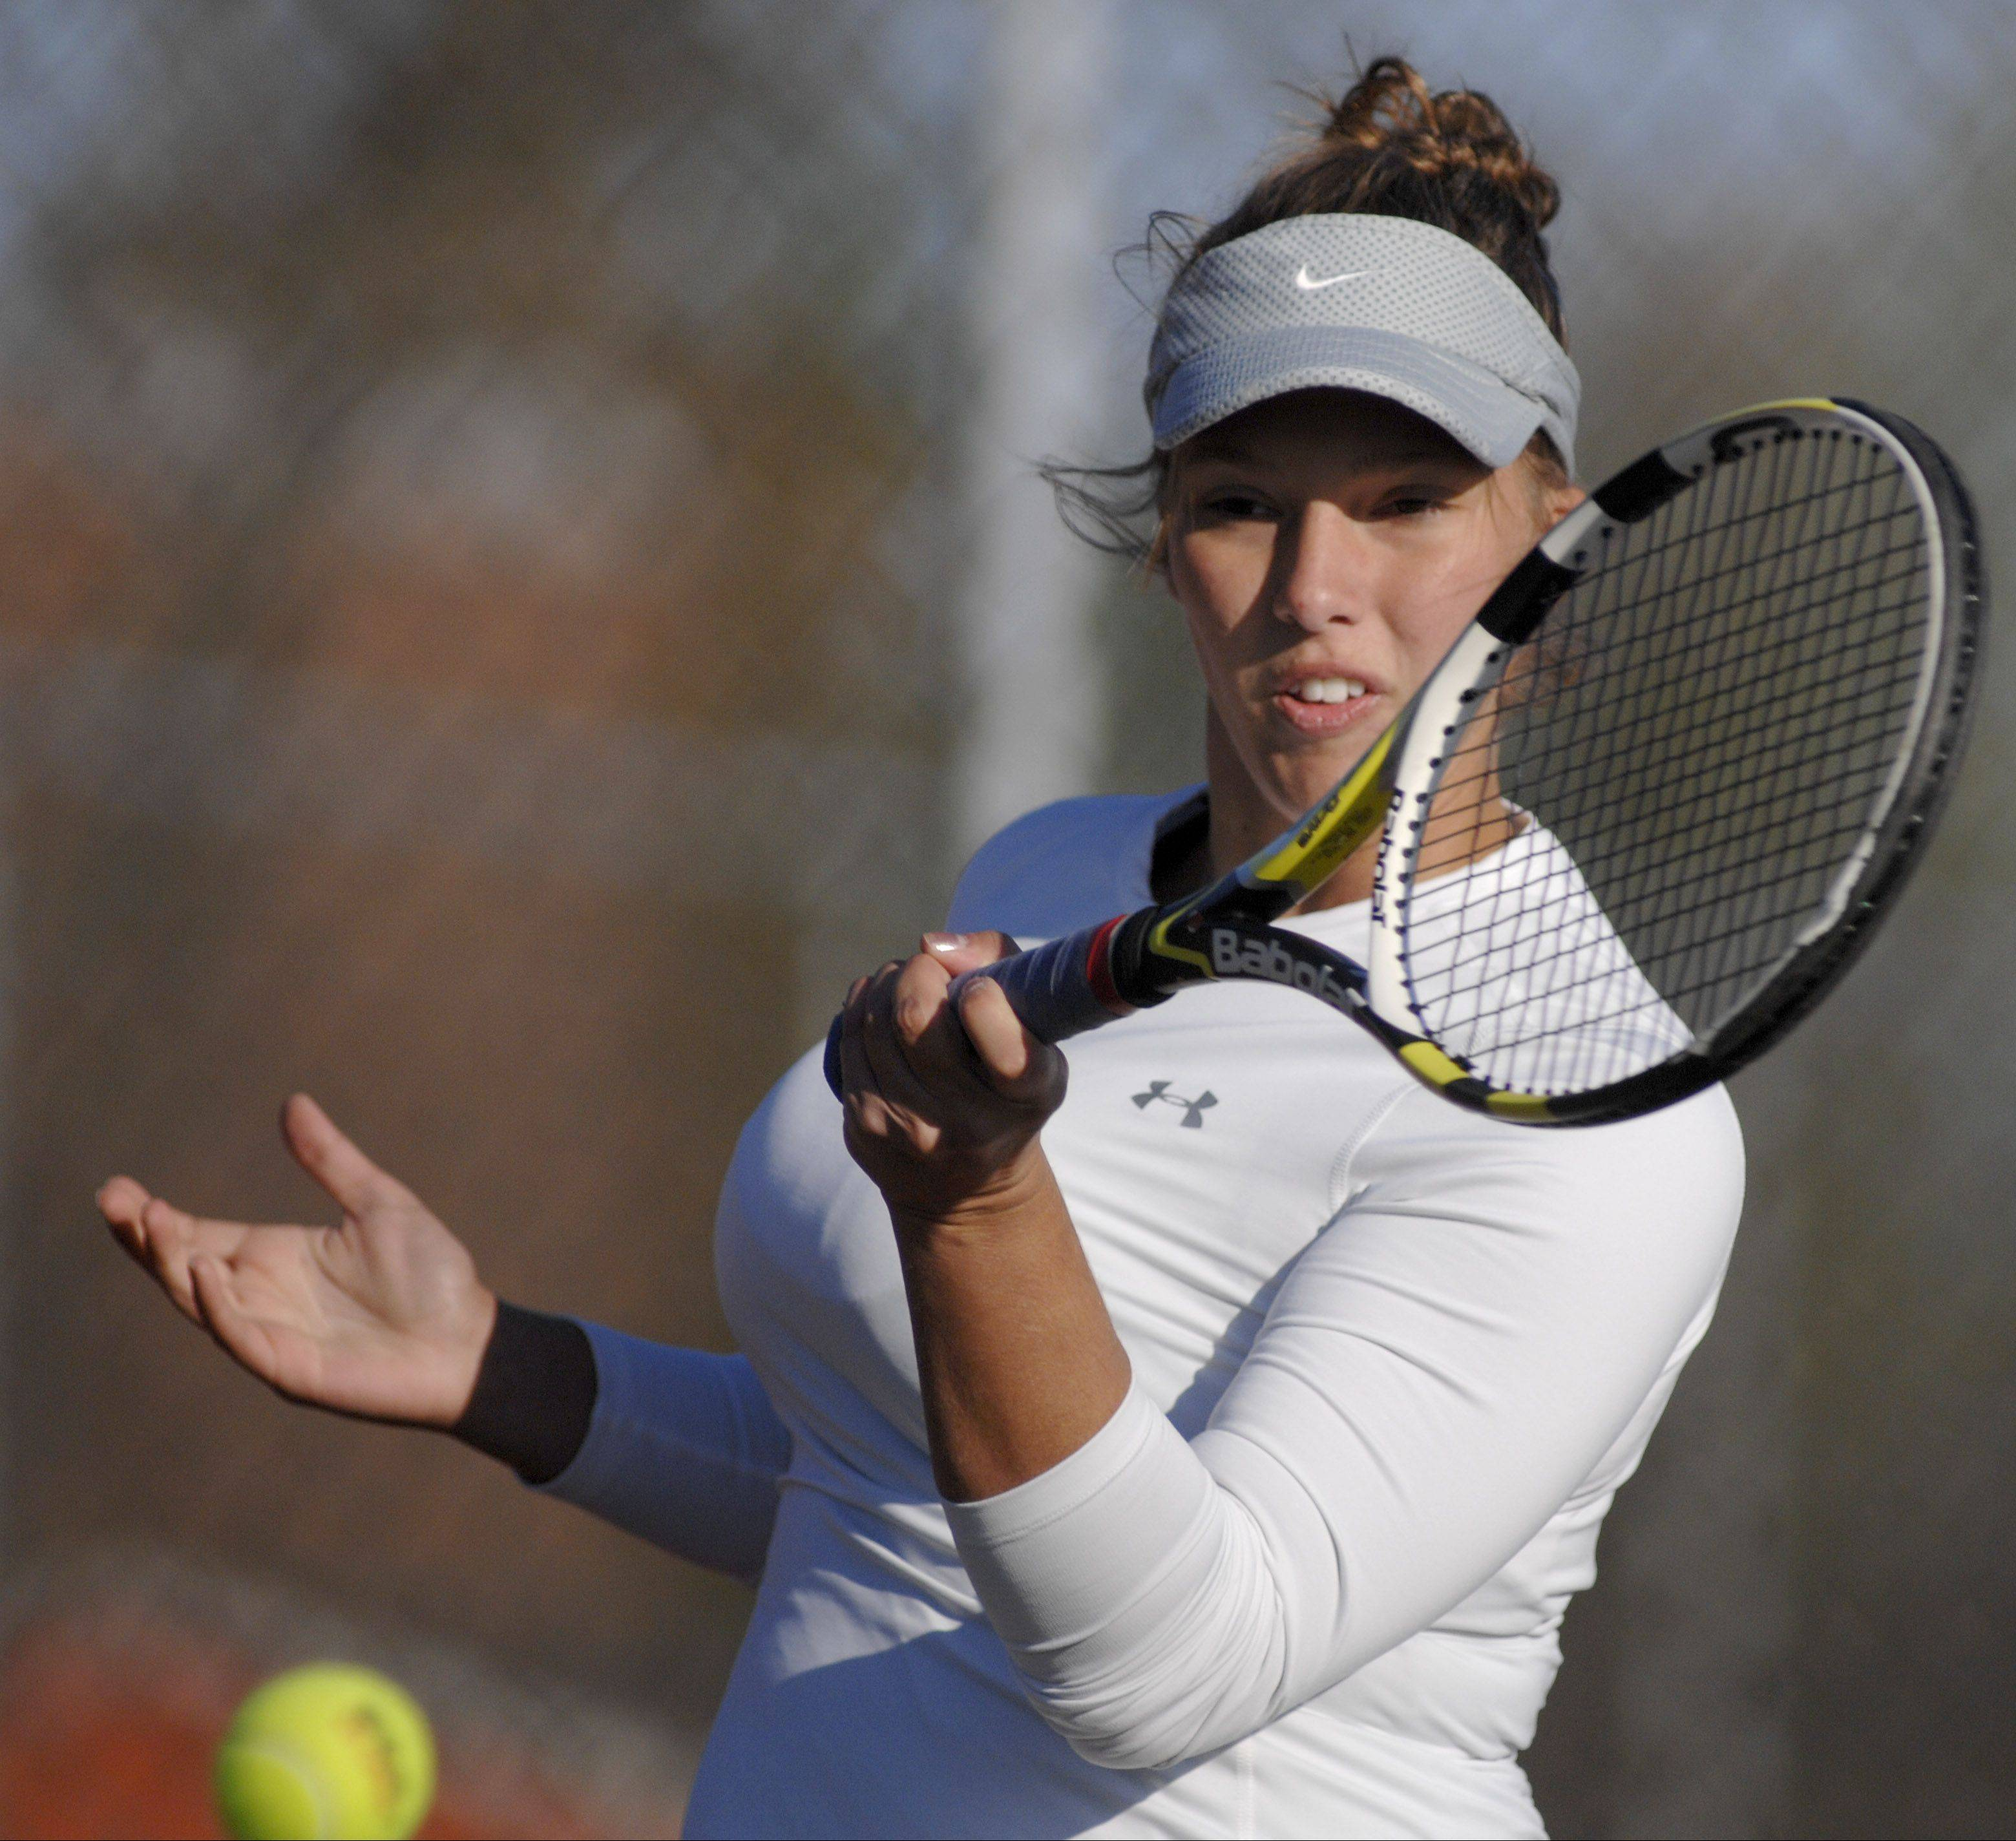 Bartlett junior Jen Gates will be seeking her third straight state tournament berth this season.